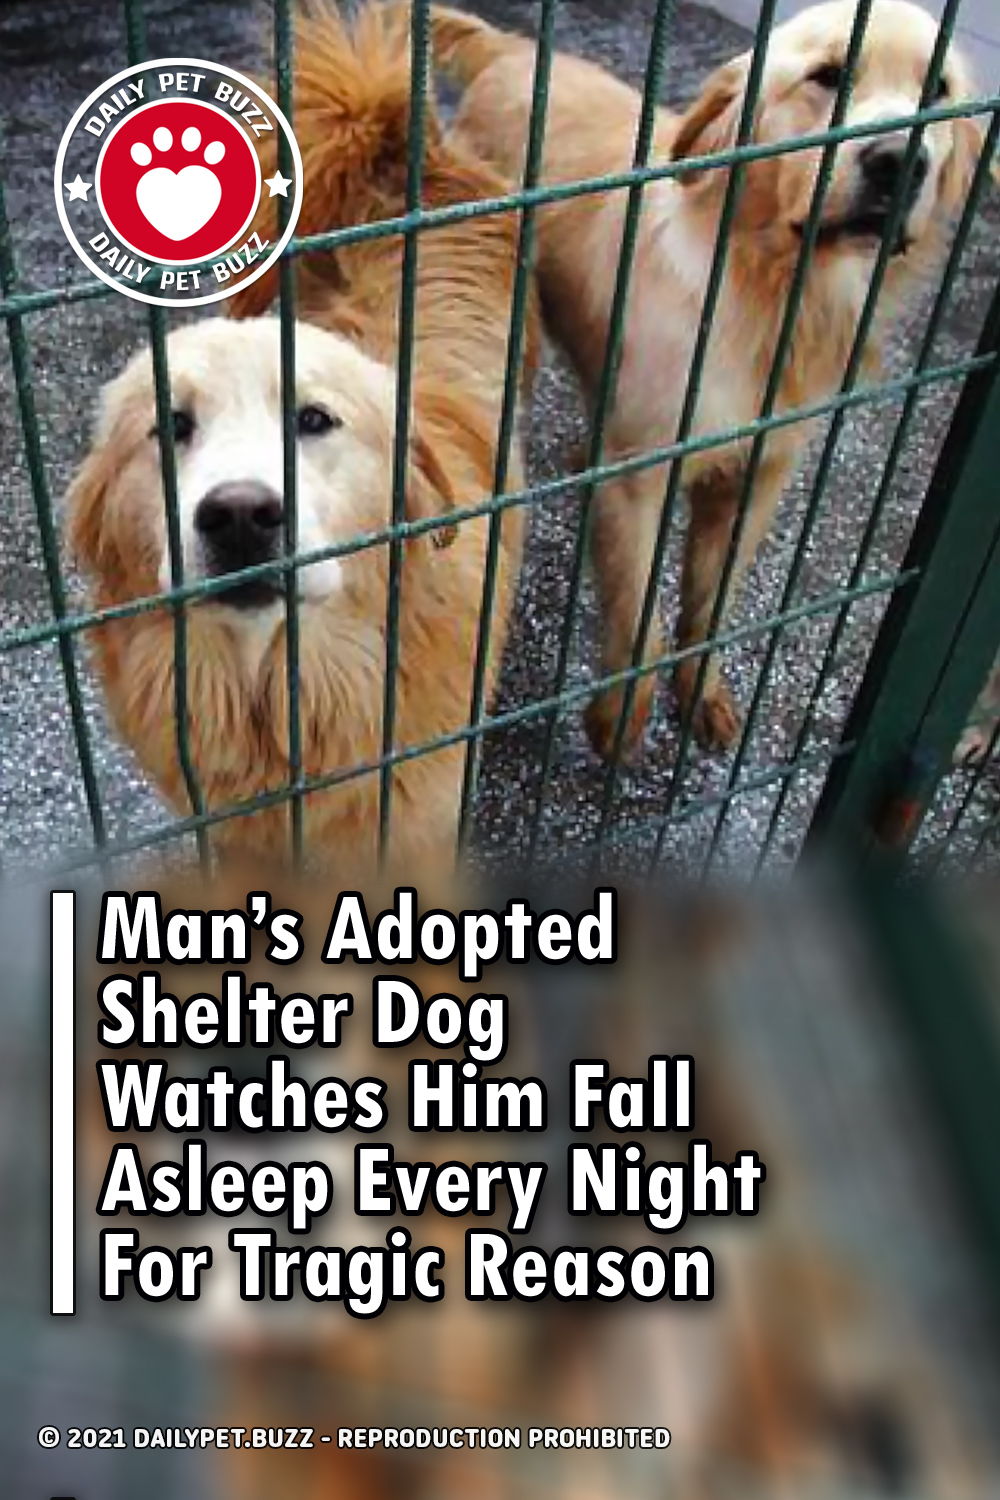 Man\'s Adopted Shelter Dog Watches Him Fall Asleep Every Night For Tragic Reason